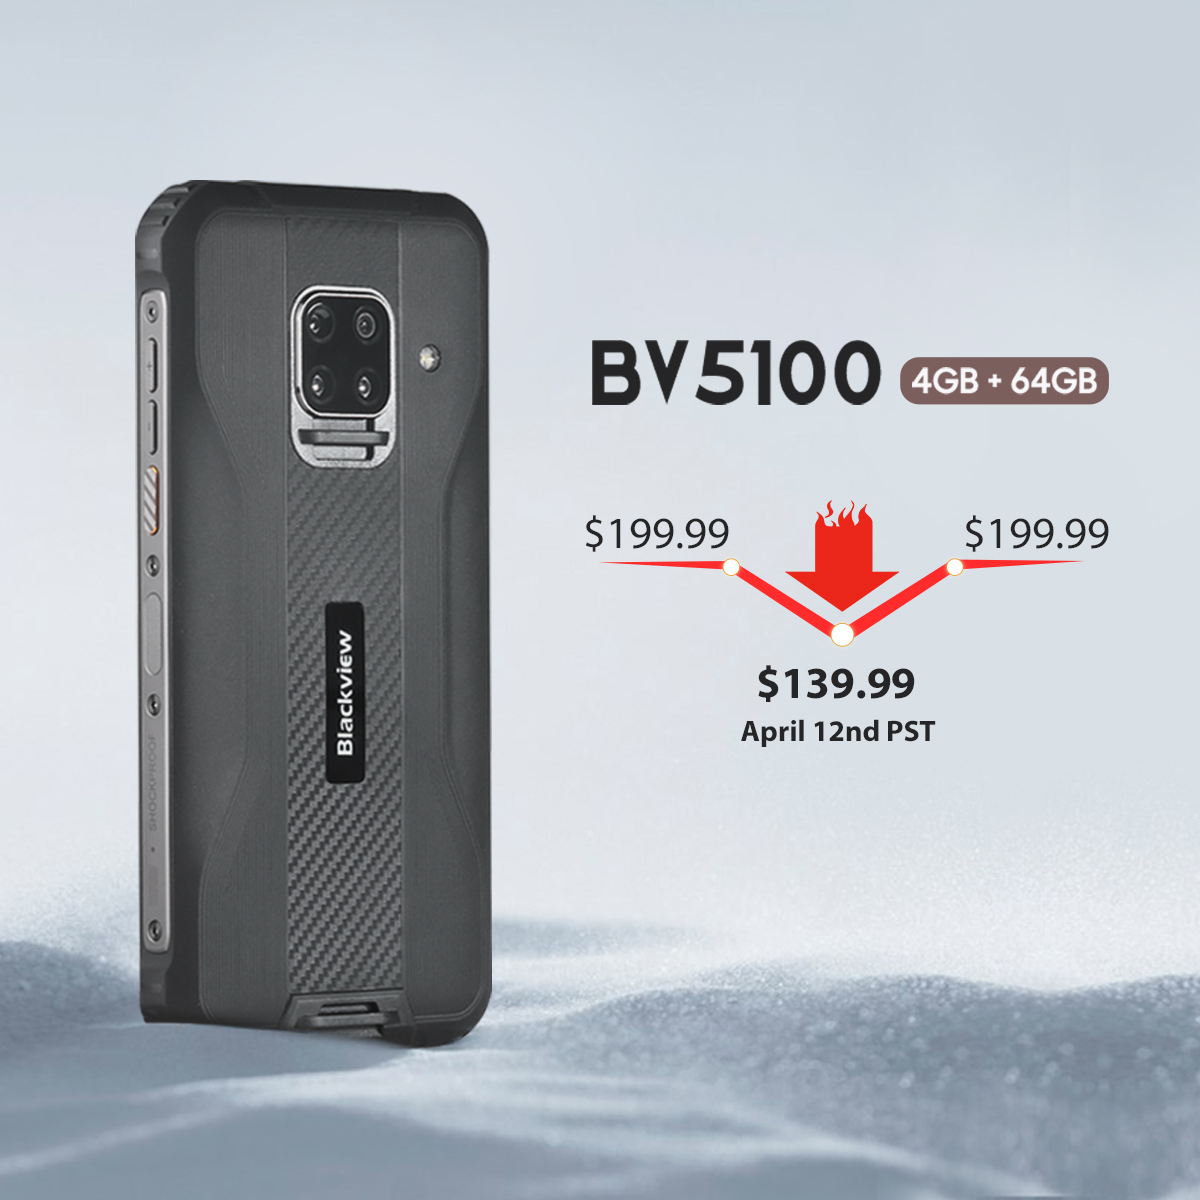 Reveal the final price of BV5100 (4GB+64GB)